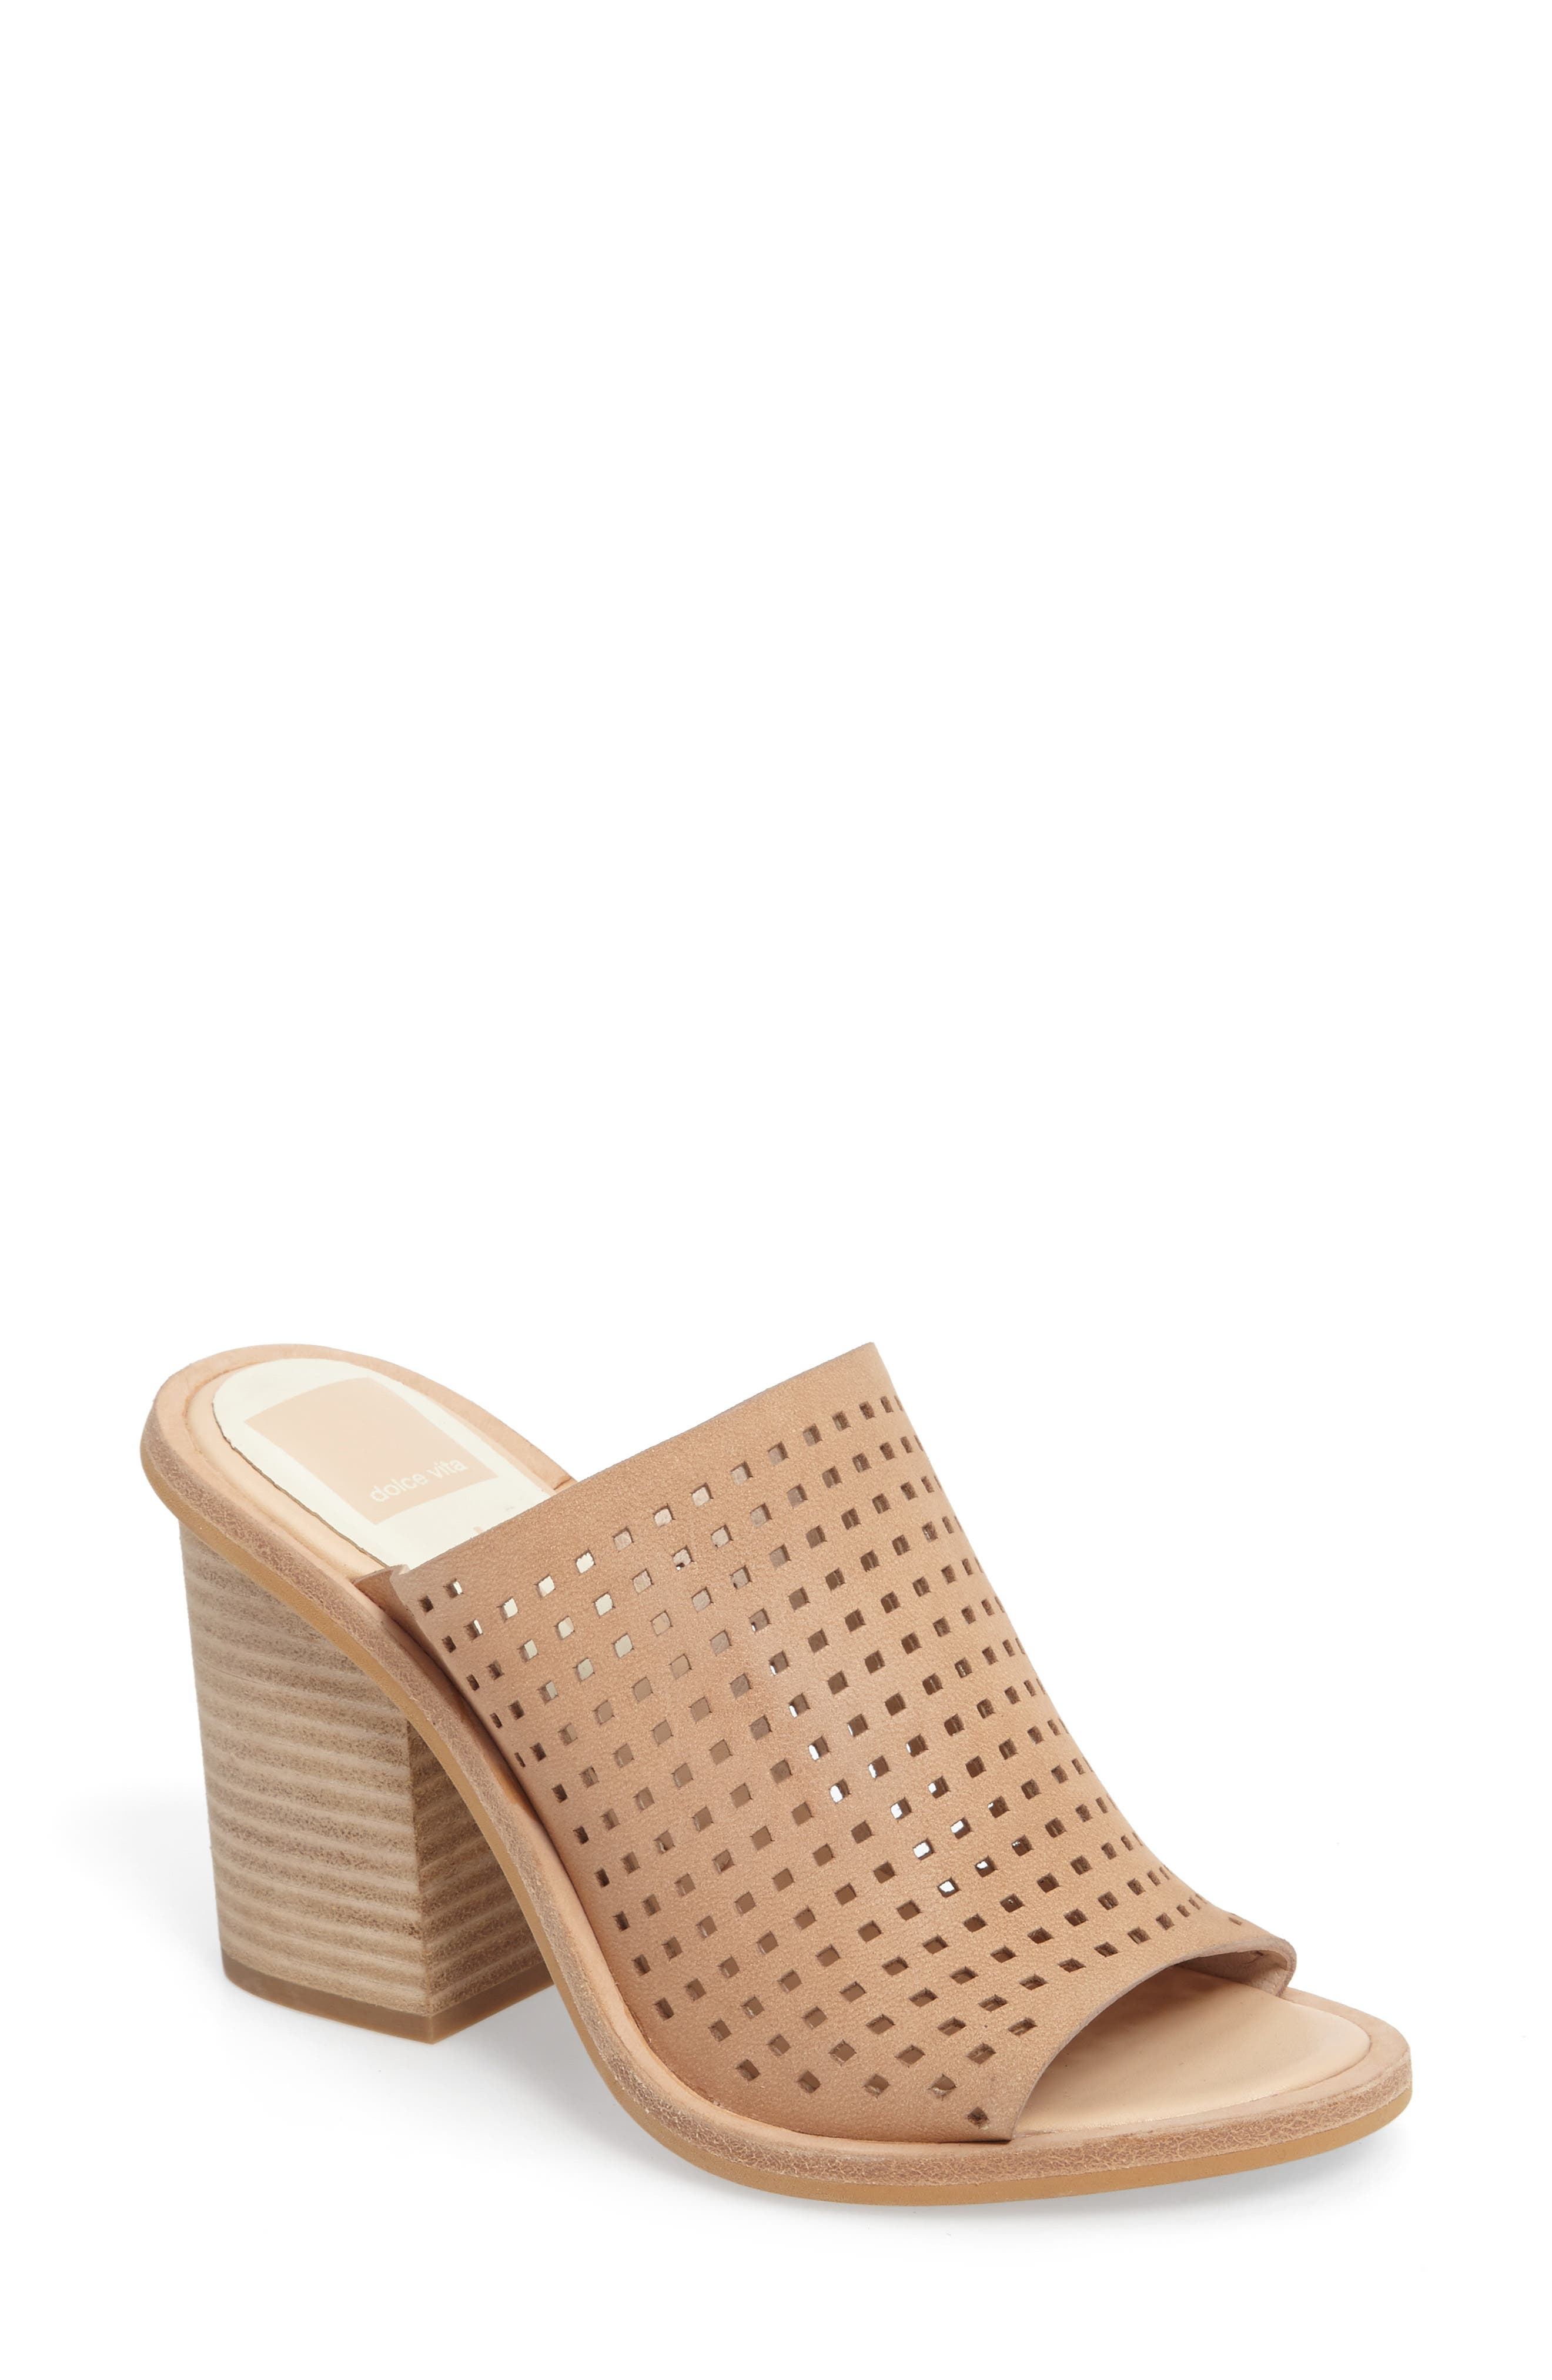 Alternate Image 1 Selected - Dolce Vita Wales Slide Sandal (Women)